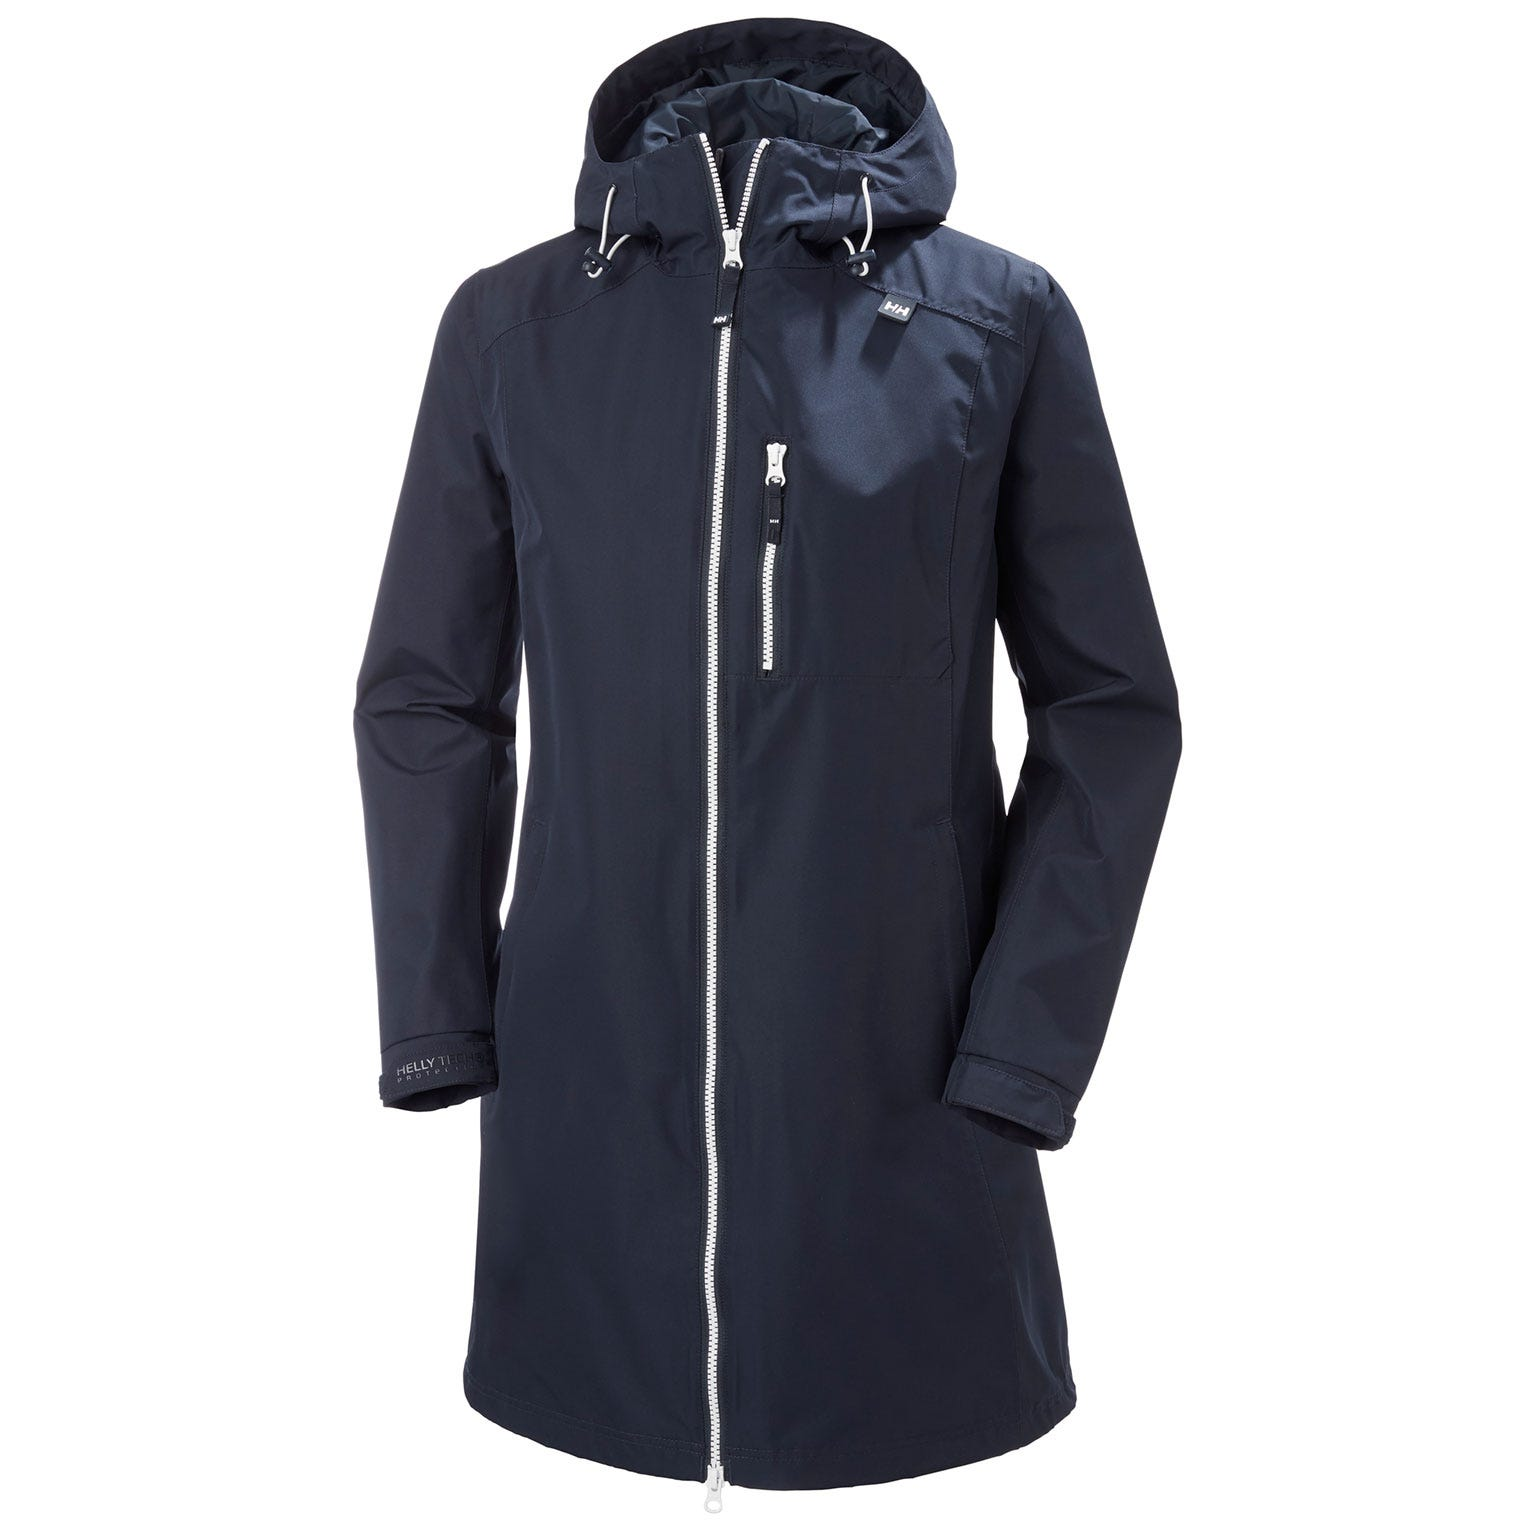 Womens Long Belfast 3/4 Length Rain Jacket | Helly Hansen Womens Navy XS